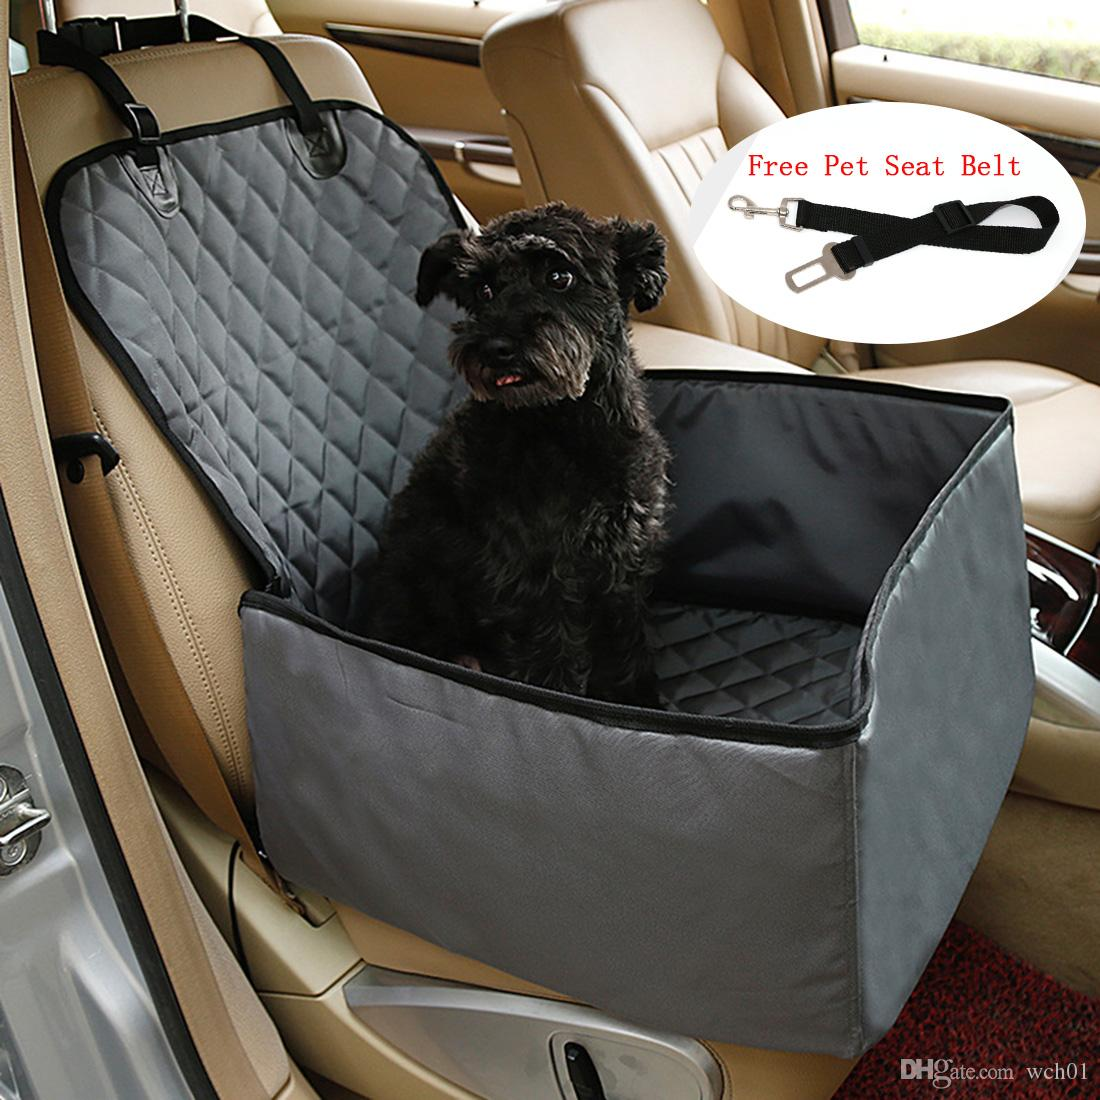 Pet Car Seat Covers >> 2019 Pet Seat Cover Grey Front Waterproof Washable Dog Car Seat Cover Protector With Pet Seat Belt For Small Medium Dogs Car Suv Trucks From Wch01